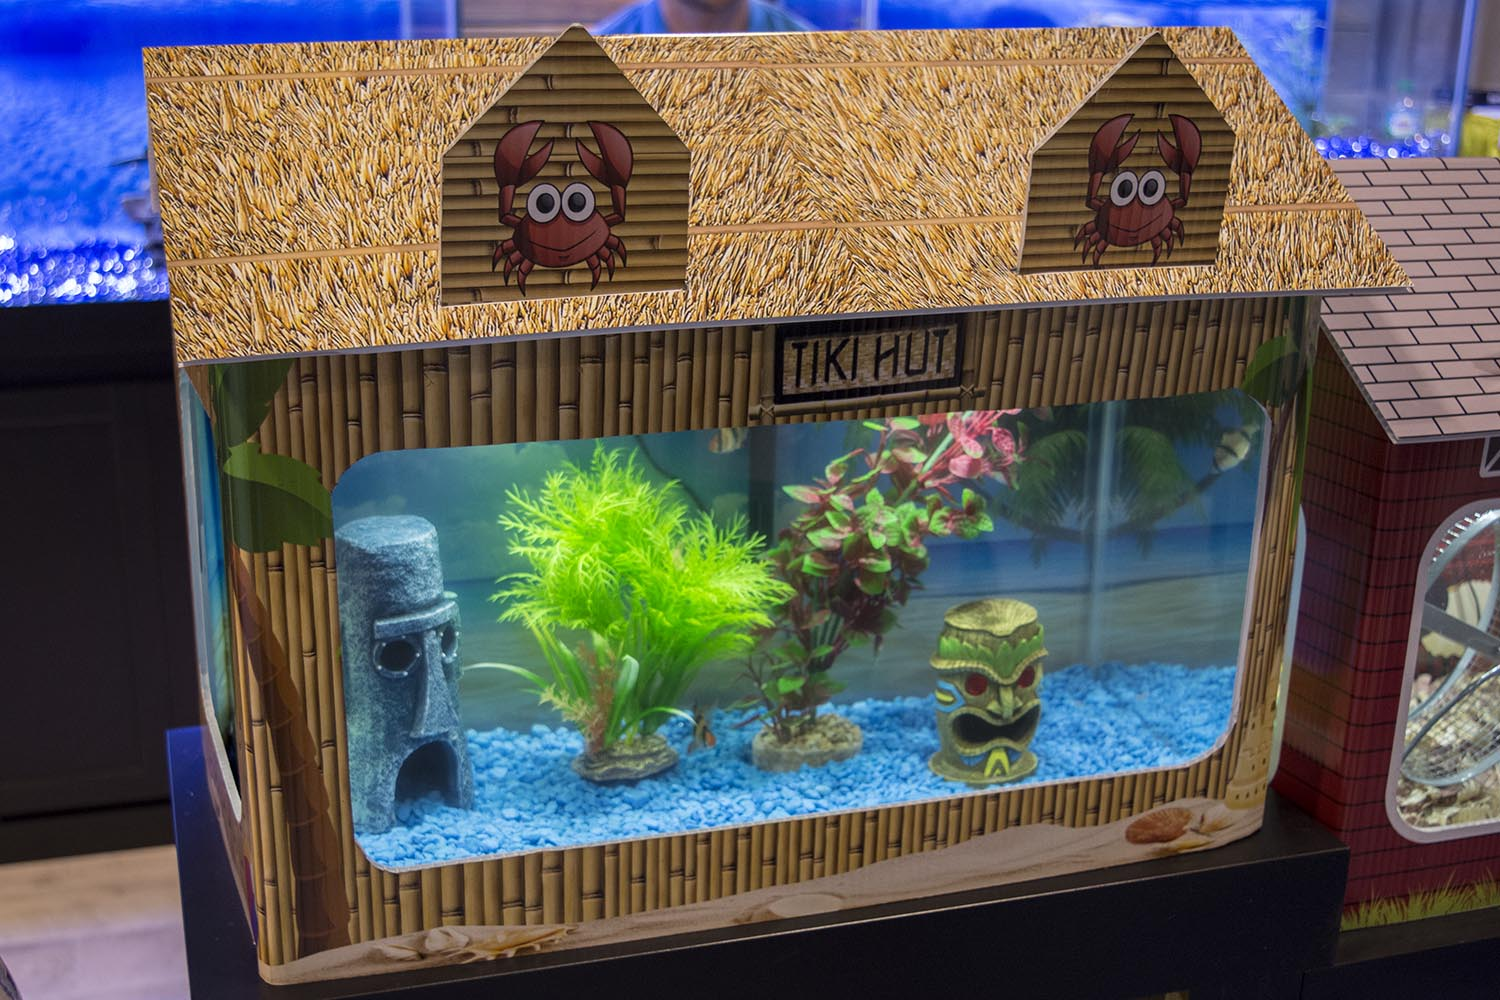 It may not be to everyone's taste, but this tiki hut tank wrap from tank and furniture builders R&J Enterprises is undeniably fun and kitschy.